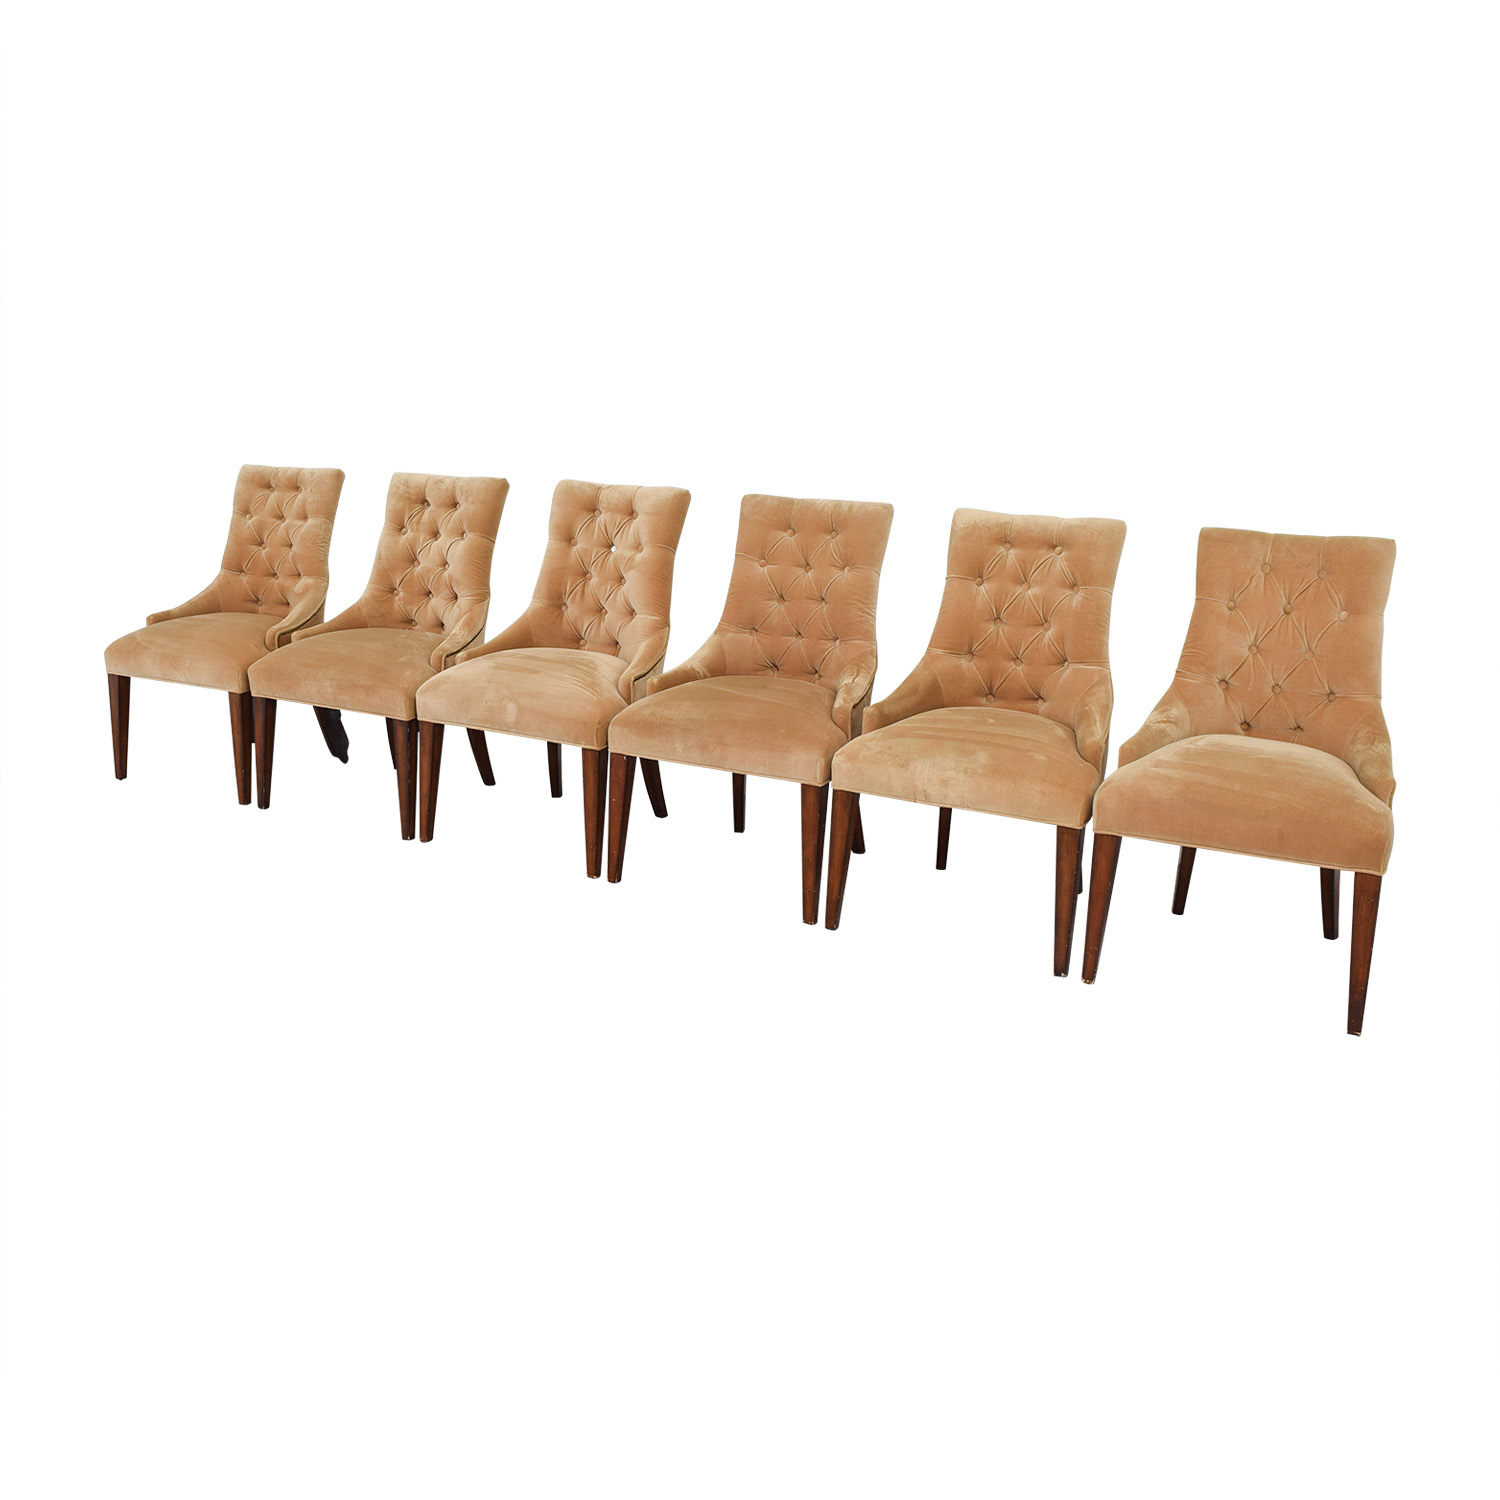 Tan Tufted Velvet Chairs / Dining Chairs